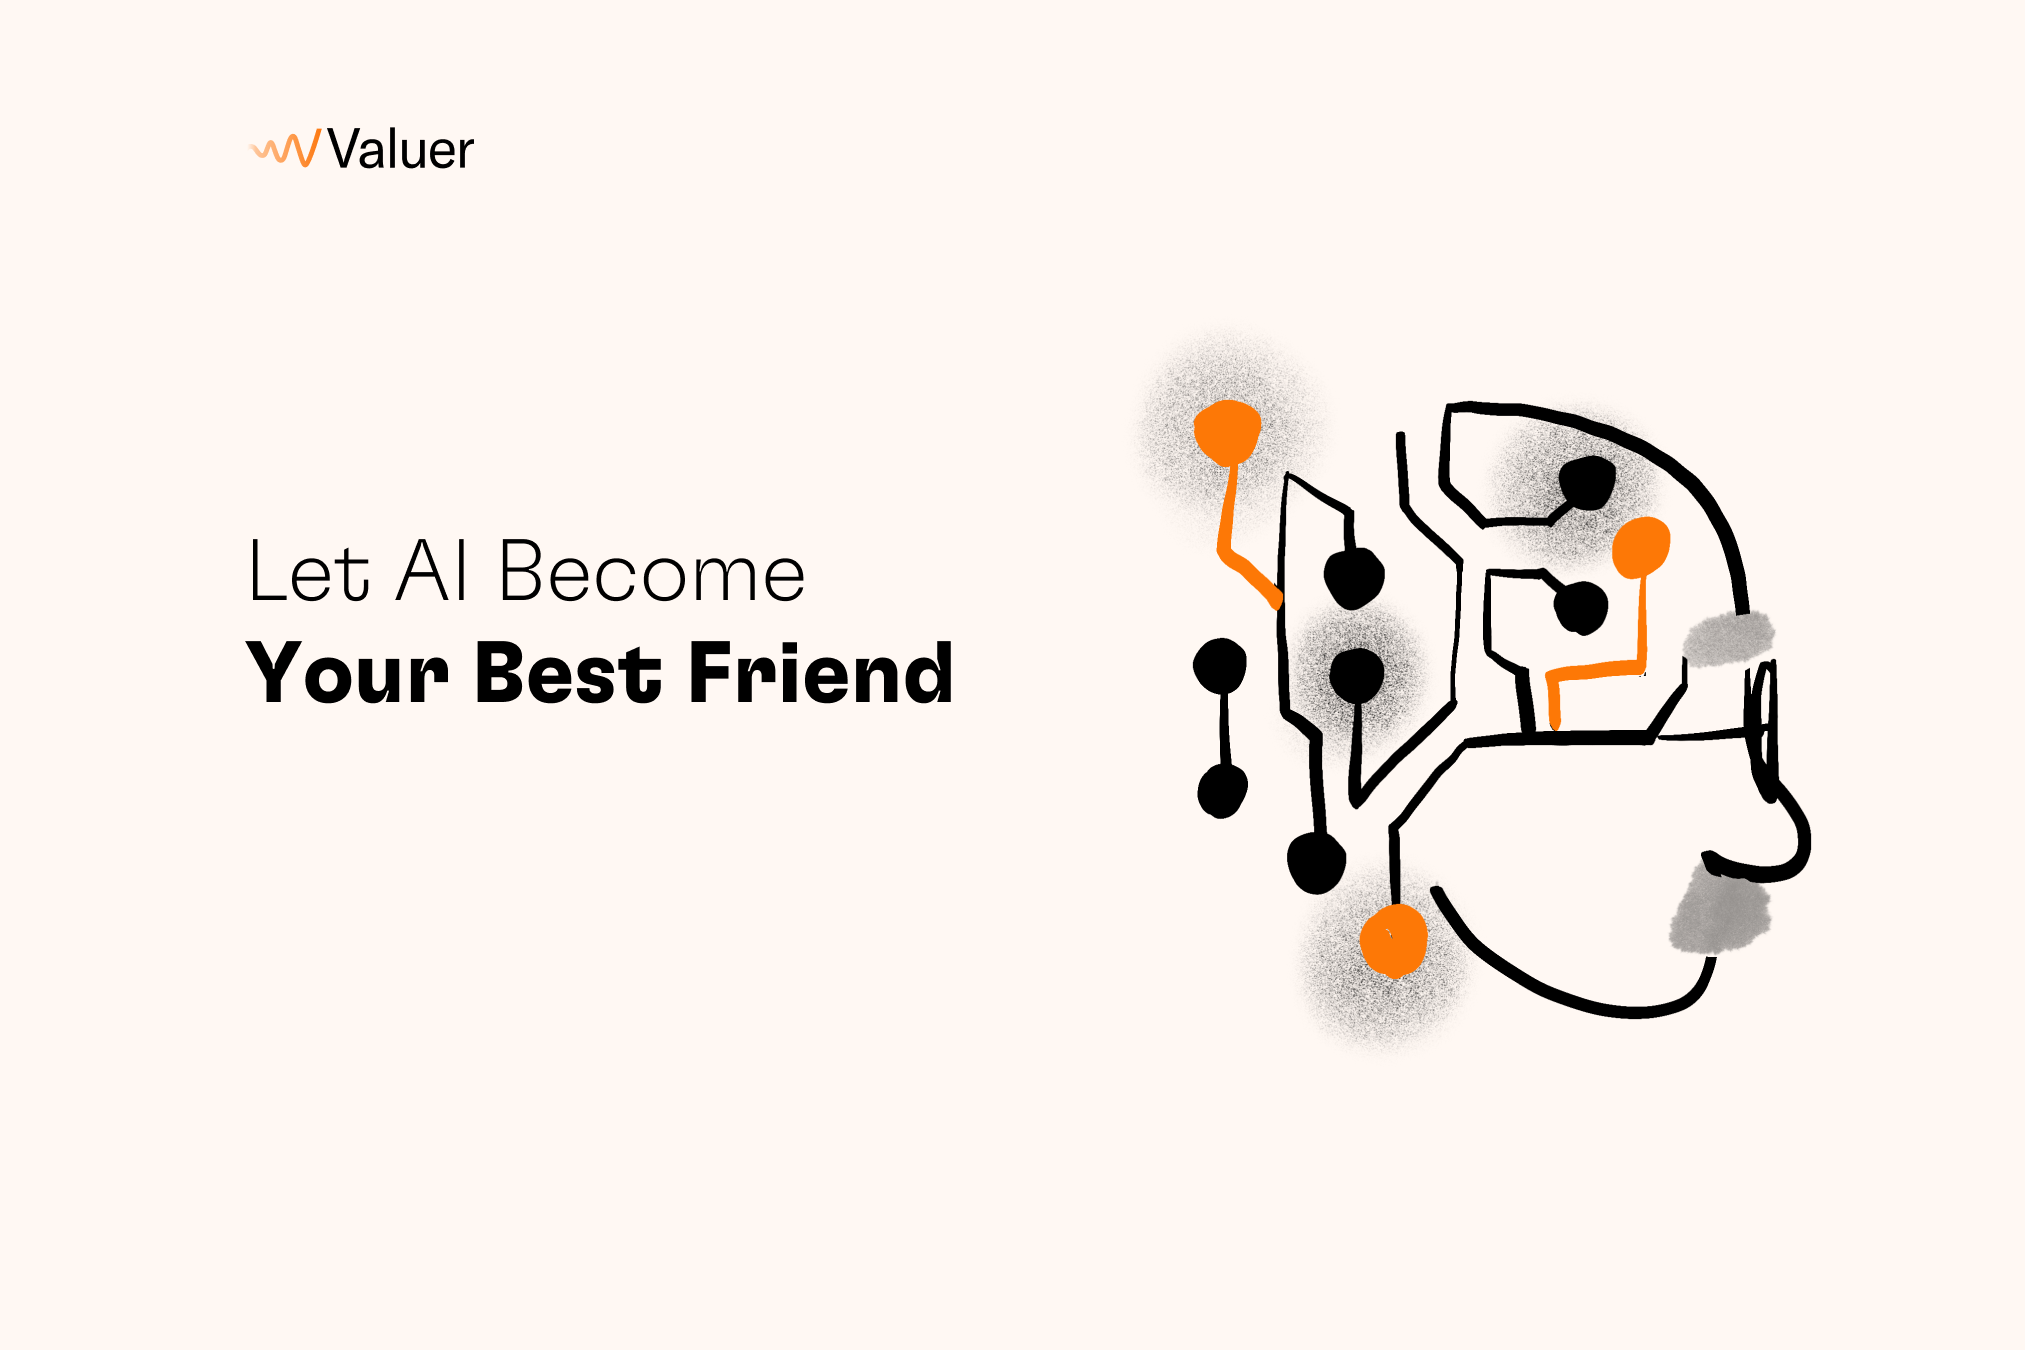 Let AI become your best friend